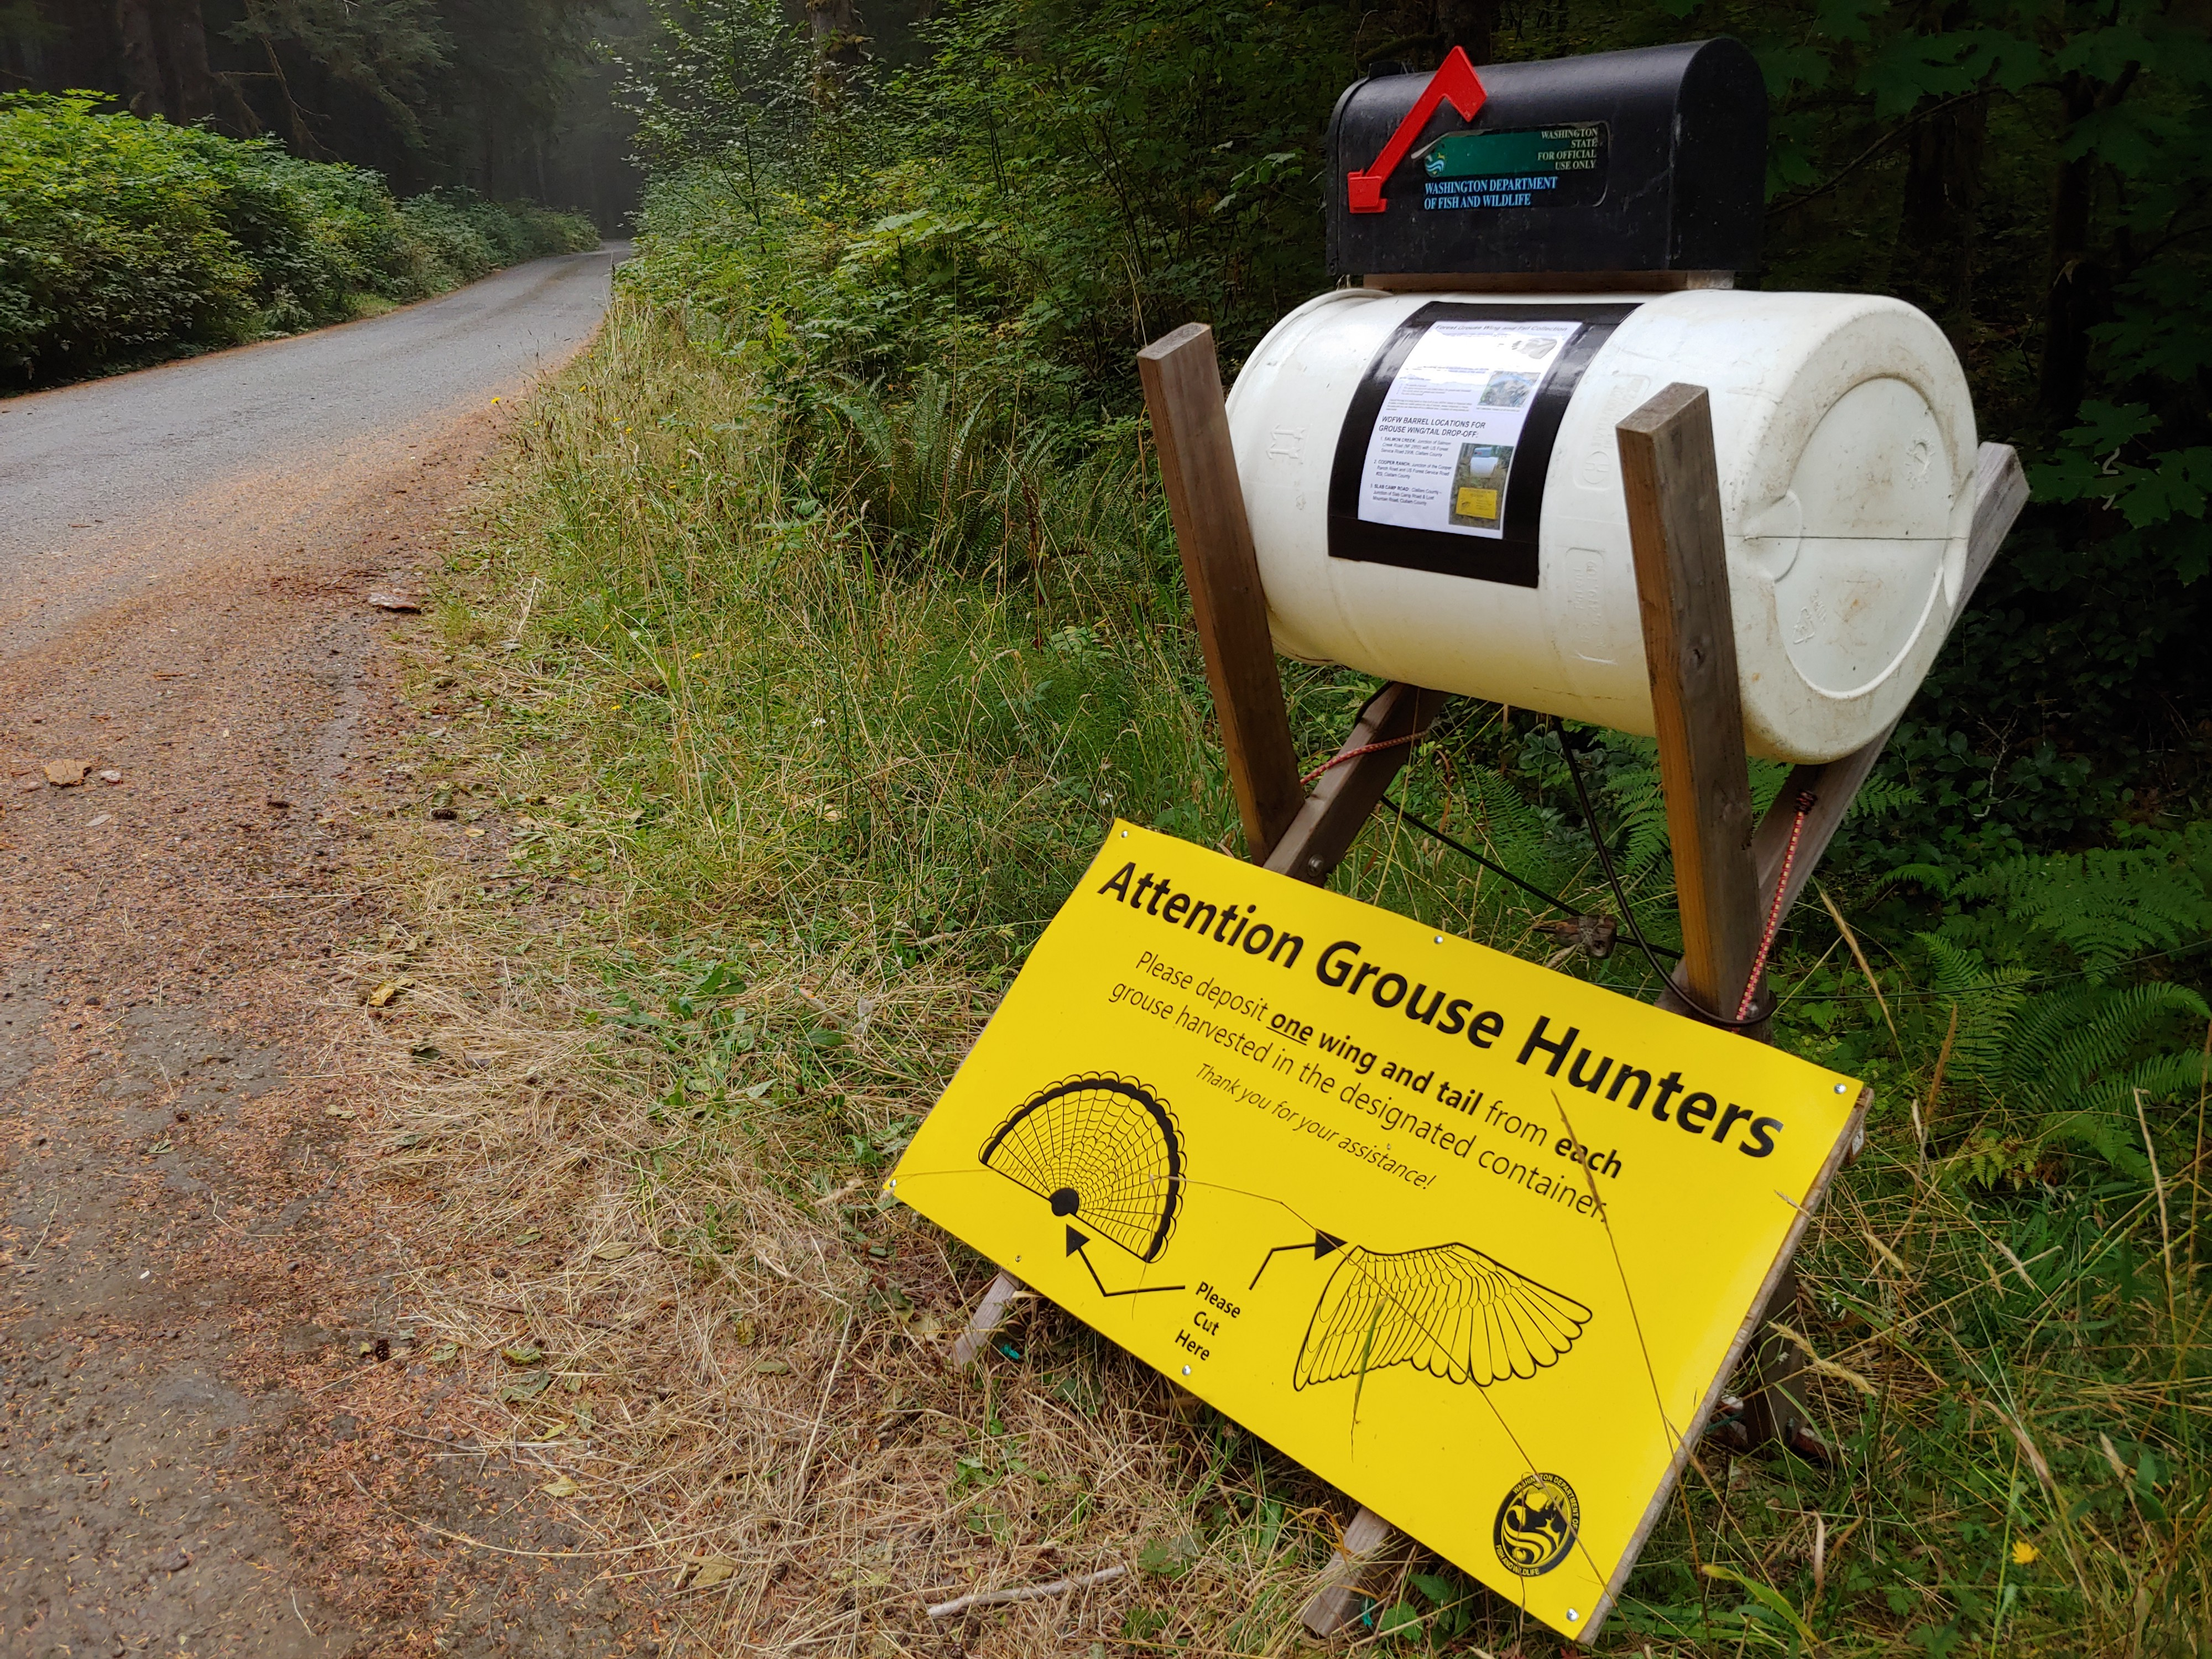 A WDFW grouse wing and tail collection barrel is seen at Forest Service Road 29 in Clallam County. (Michael Foster/WDFW)